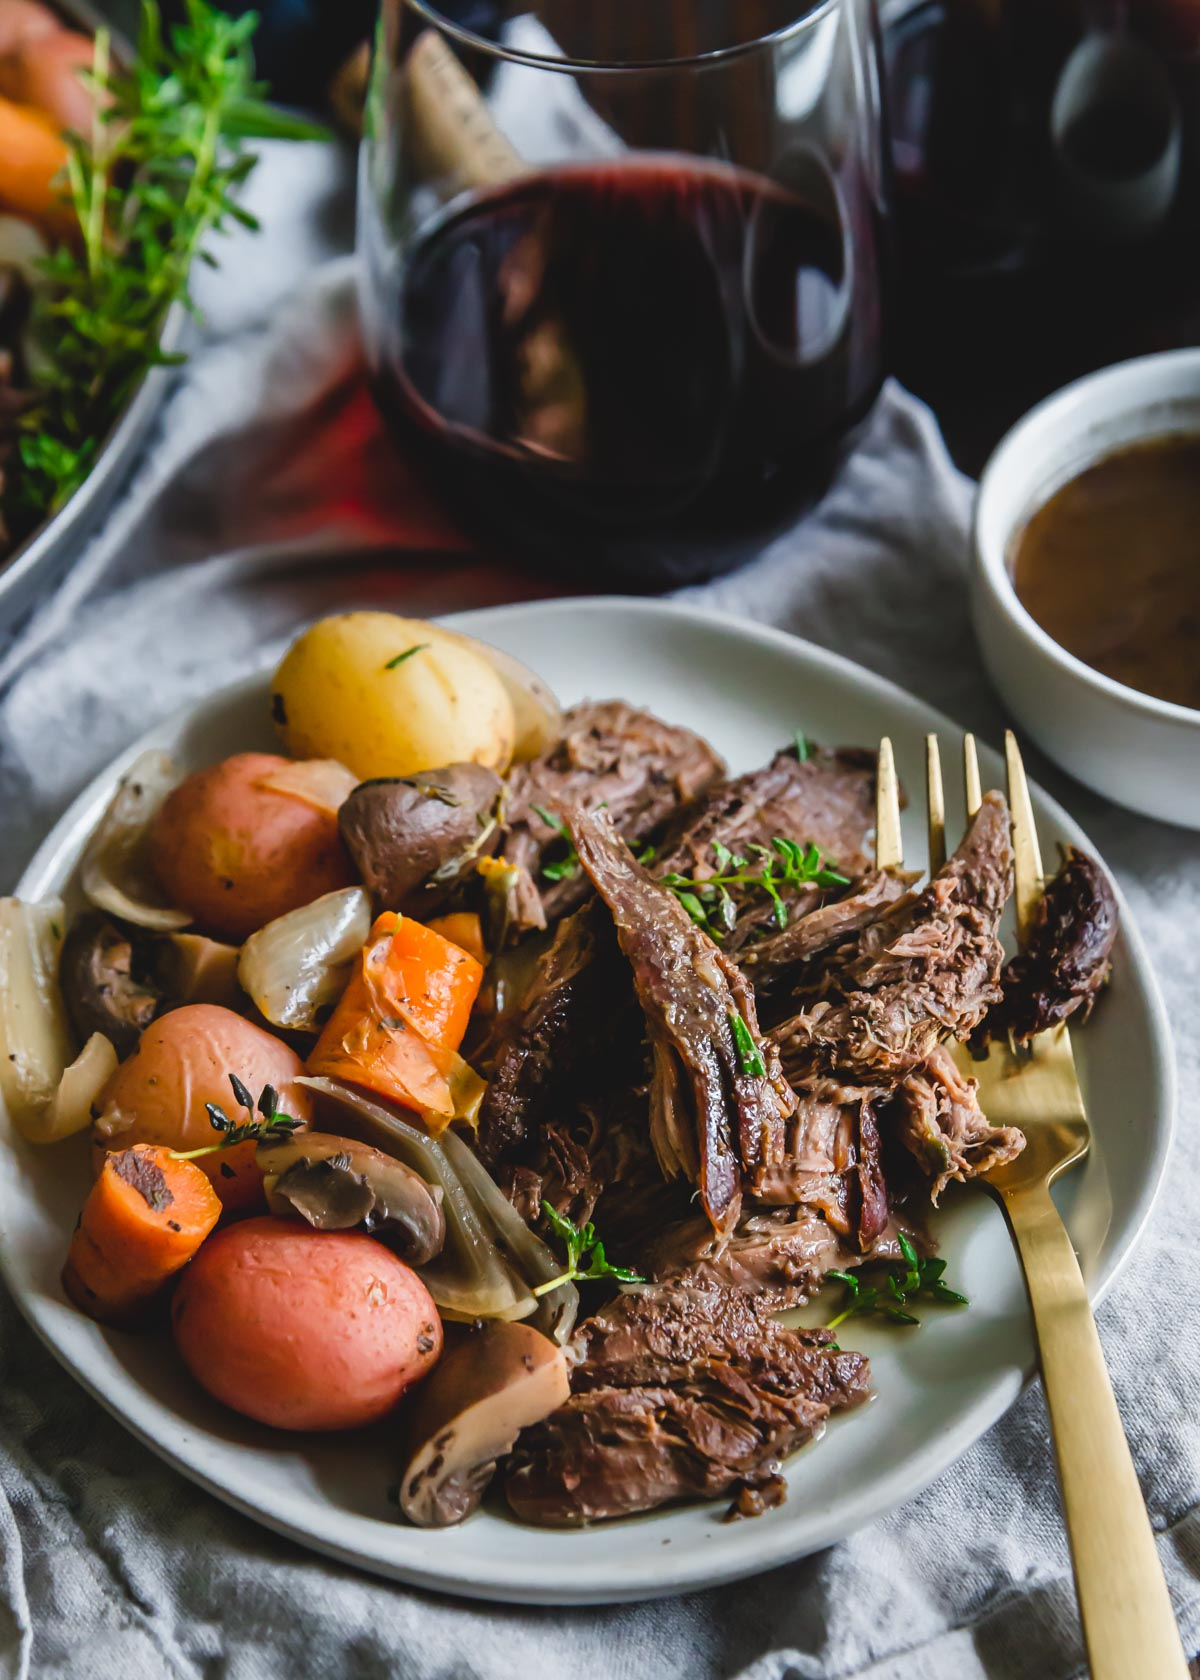 This easy Instant Pot venison roast is cooked along with baby potatoes, mushrooms, carrots and onions for a comforting winter meal all made in one pot.